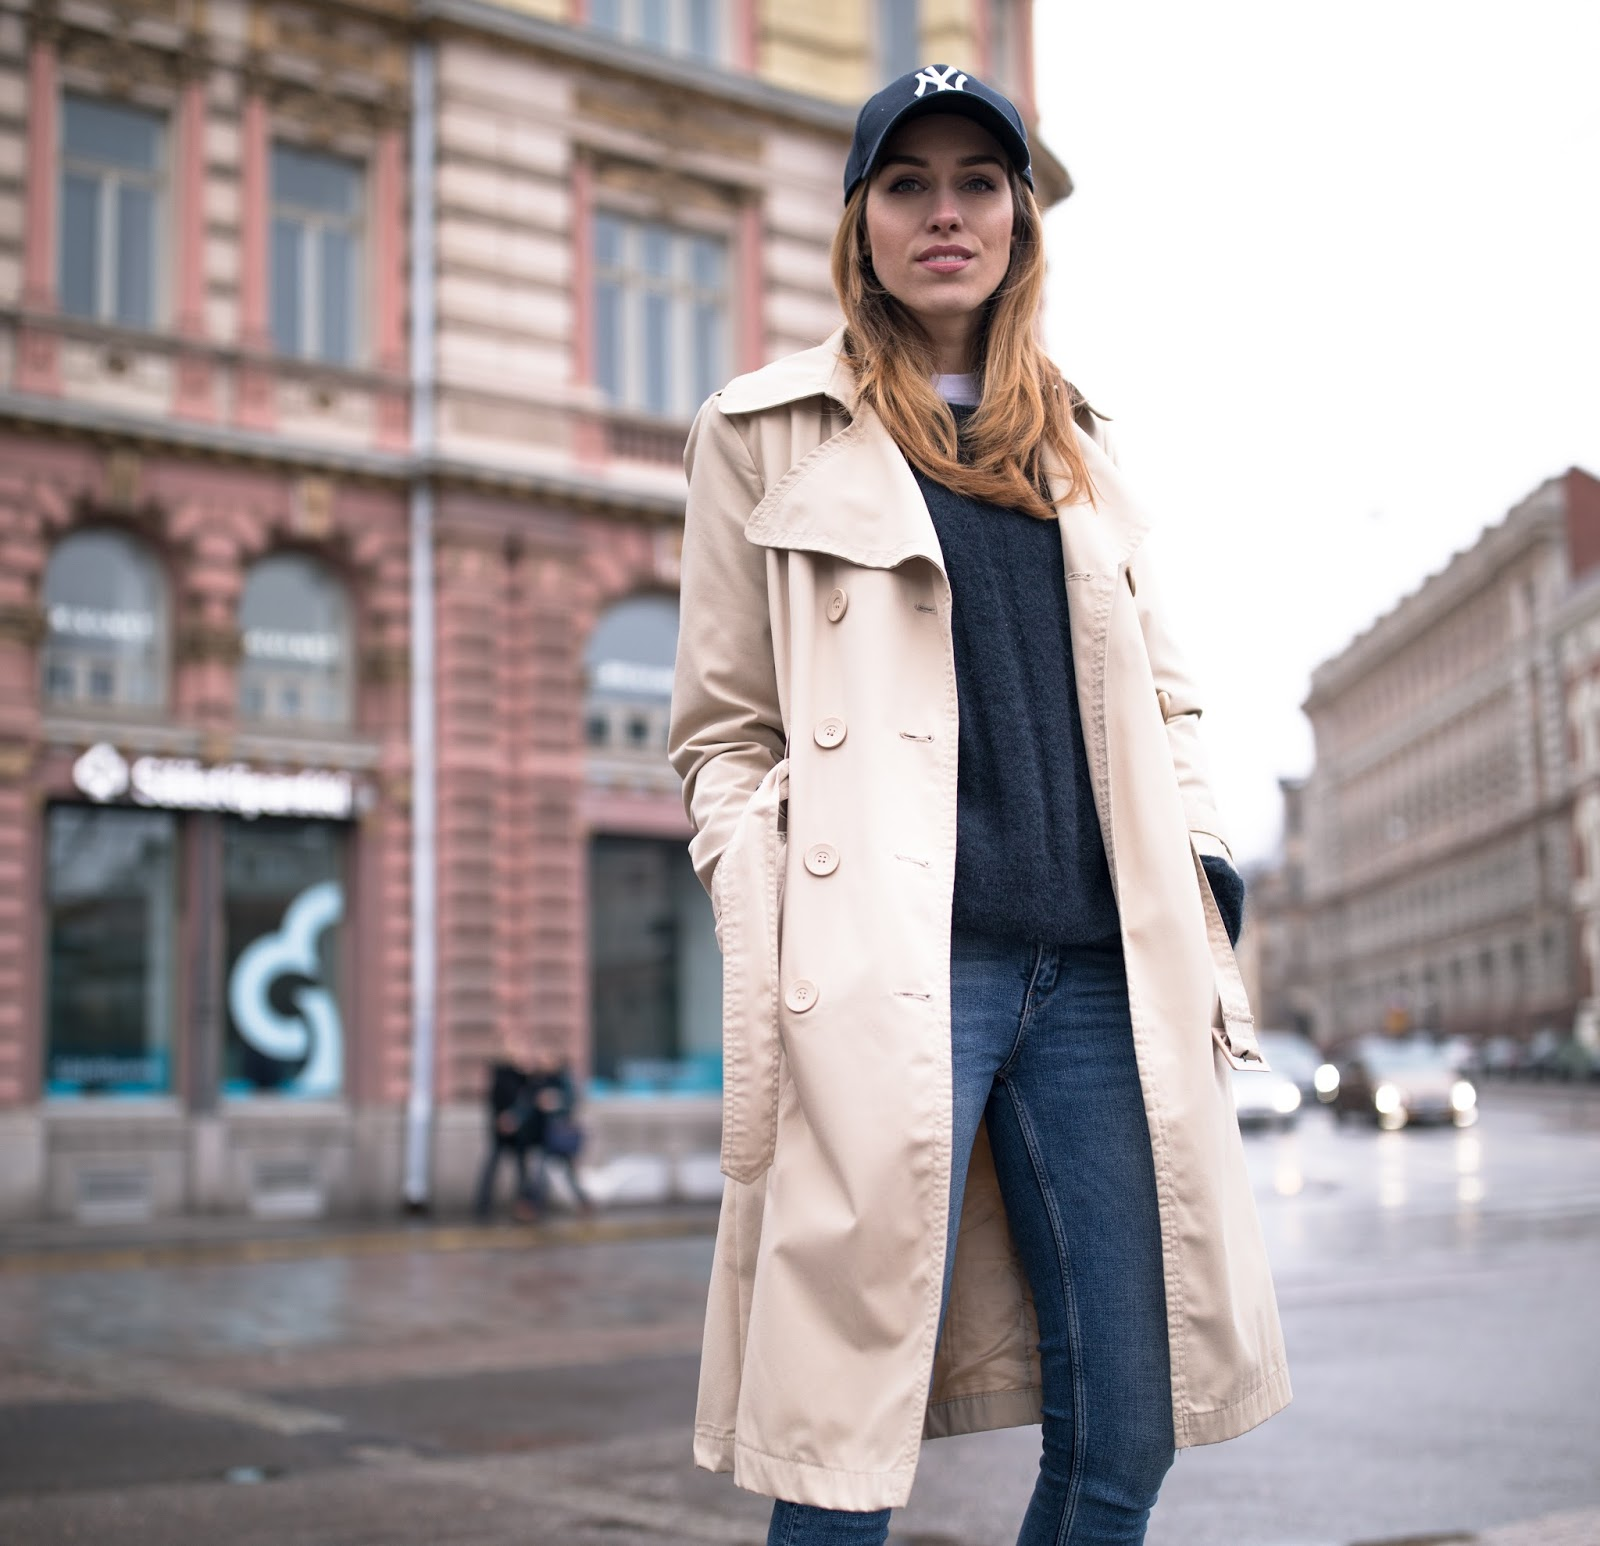 beige long trench coat cap outfit